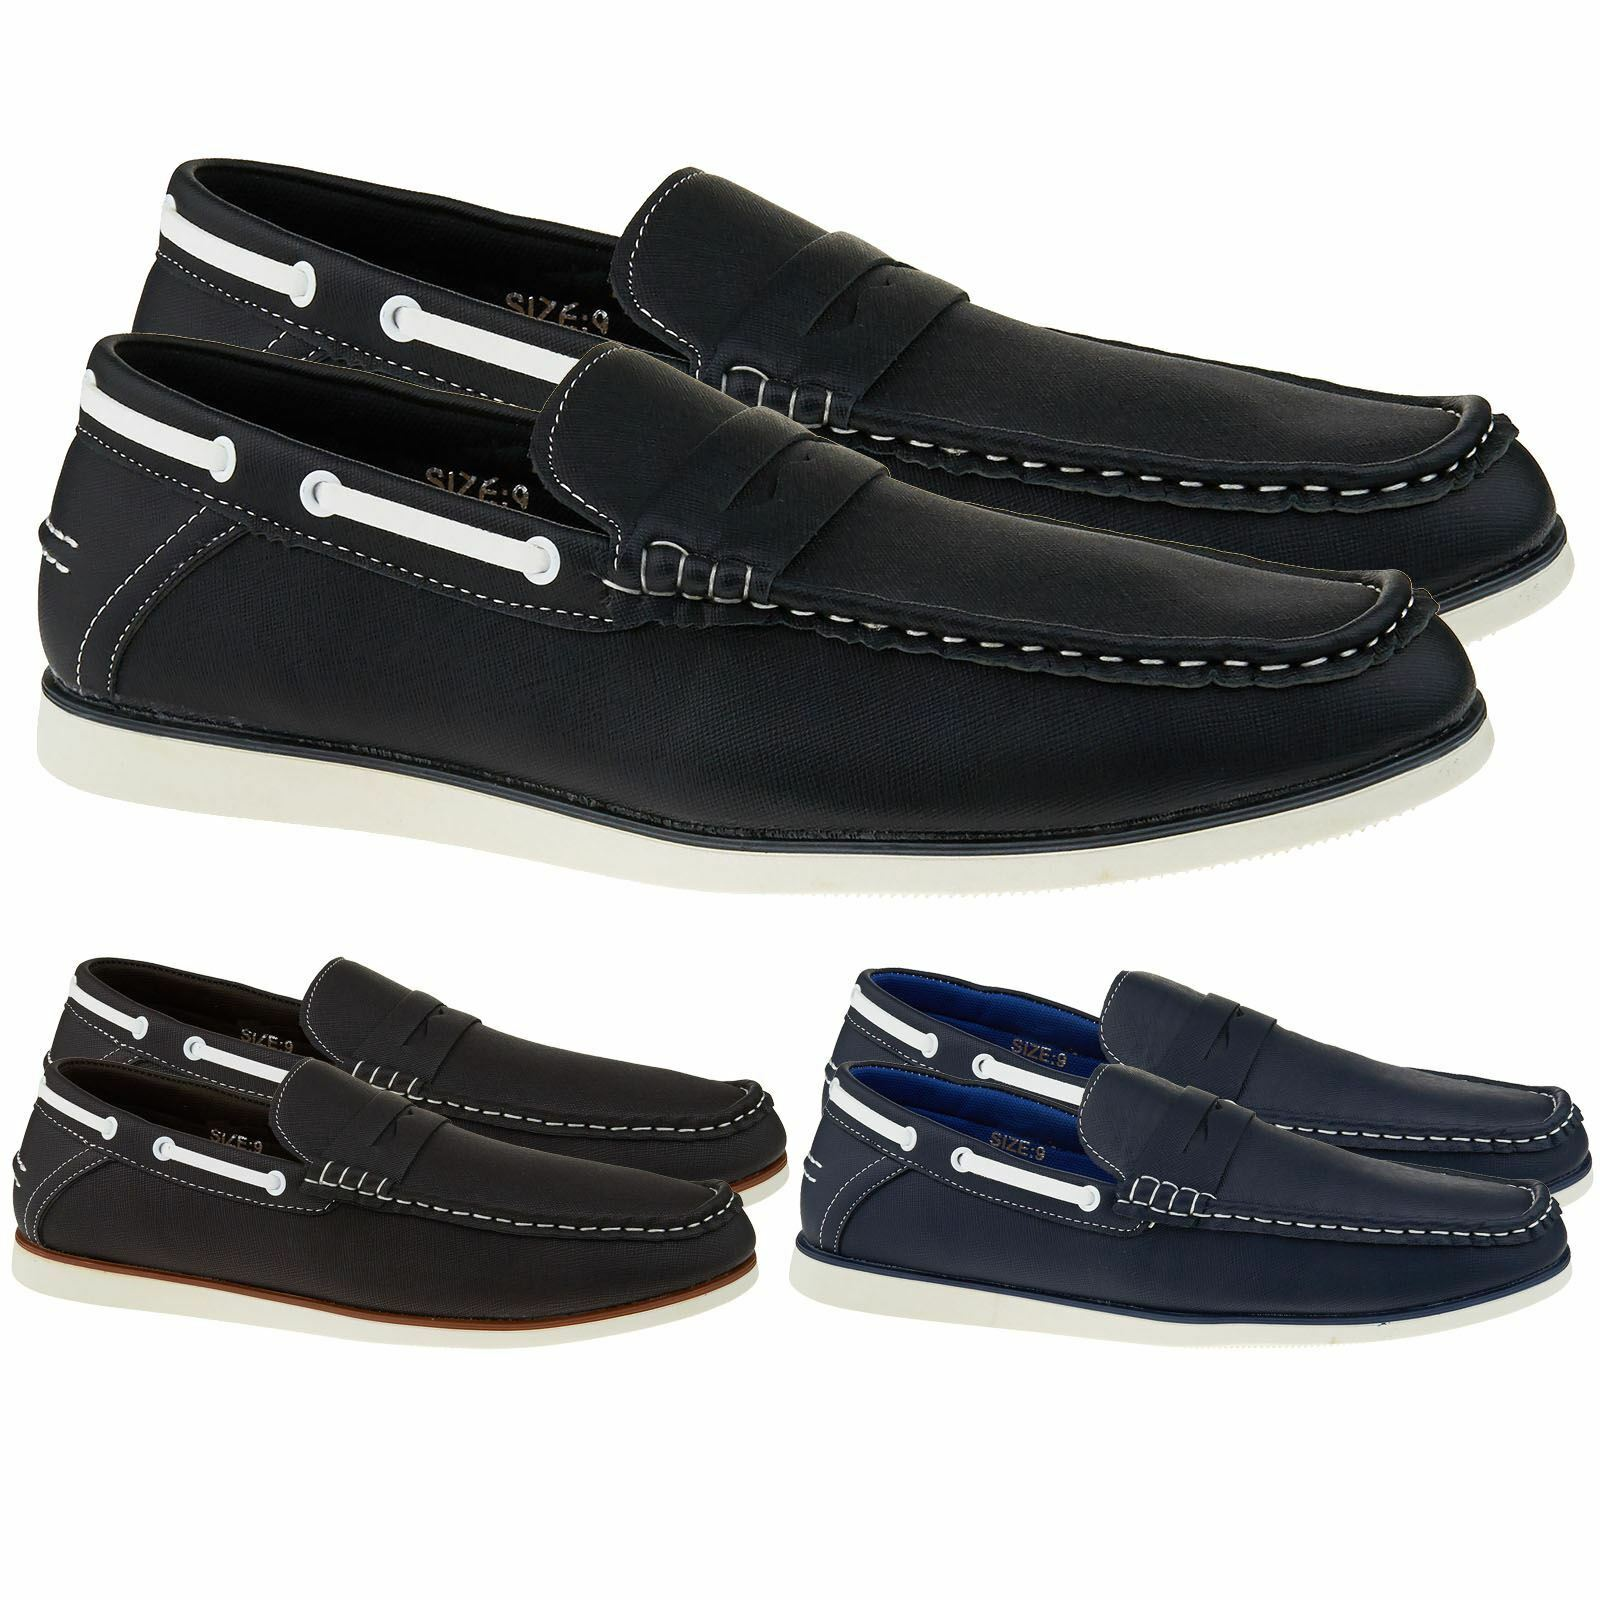 Mr/Ms On New Boys Mens Slip On Mr/Ms Casual Boat Deck Moccasin Designer Loafers Driving Shoes Good design Optimal price Fair price HB456 2431d8